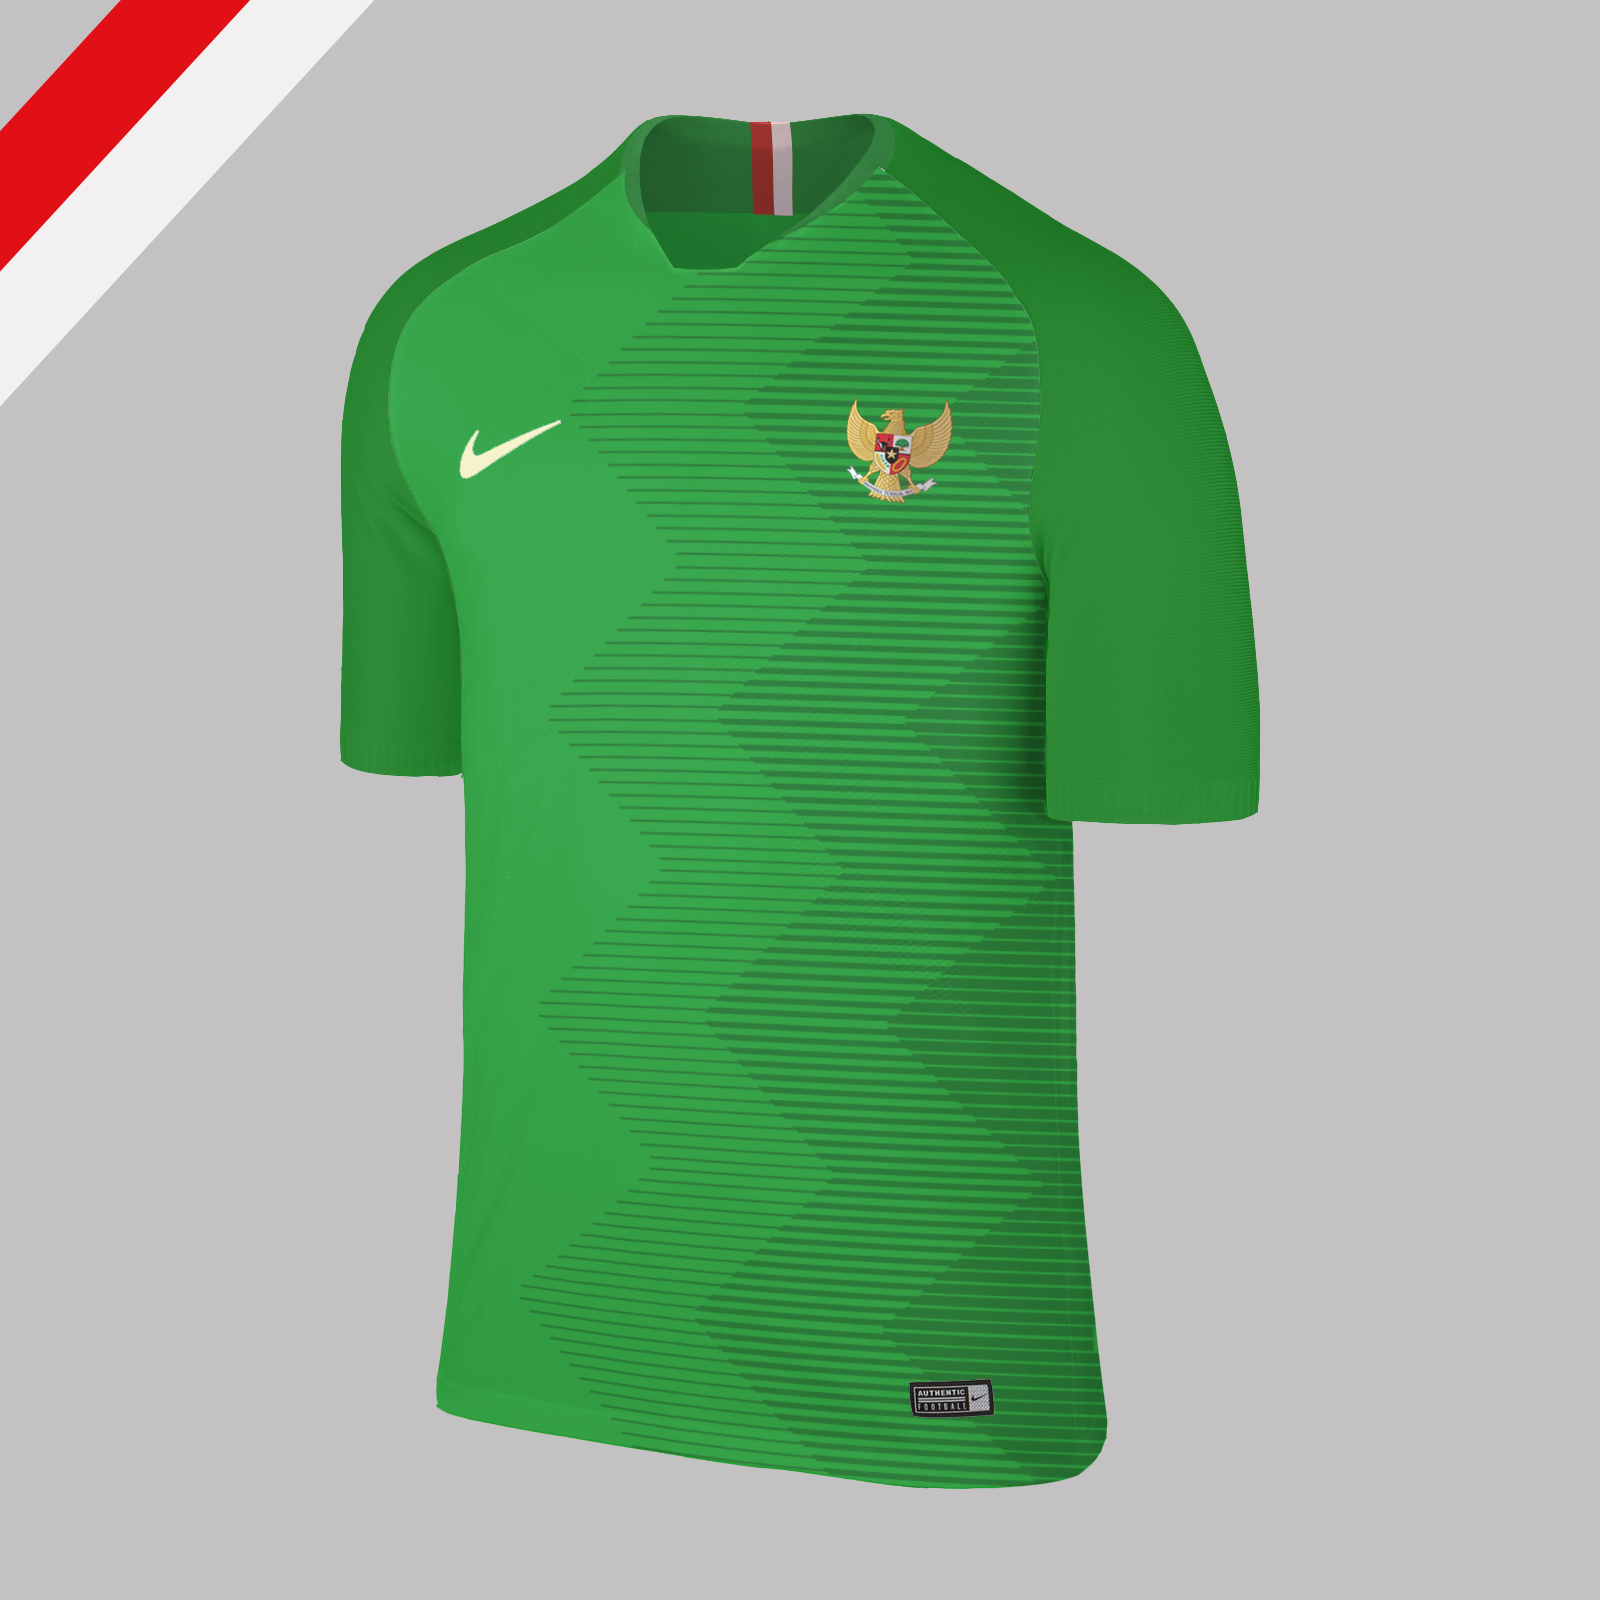 131e06298 Nike Indonesia Away Jersey 2018 Concept